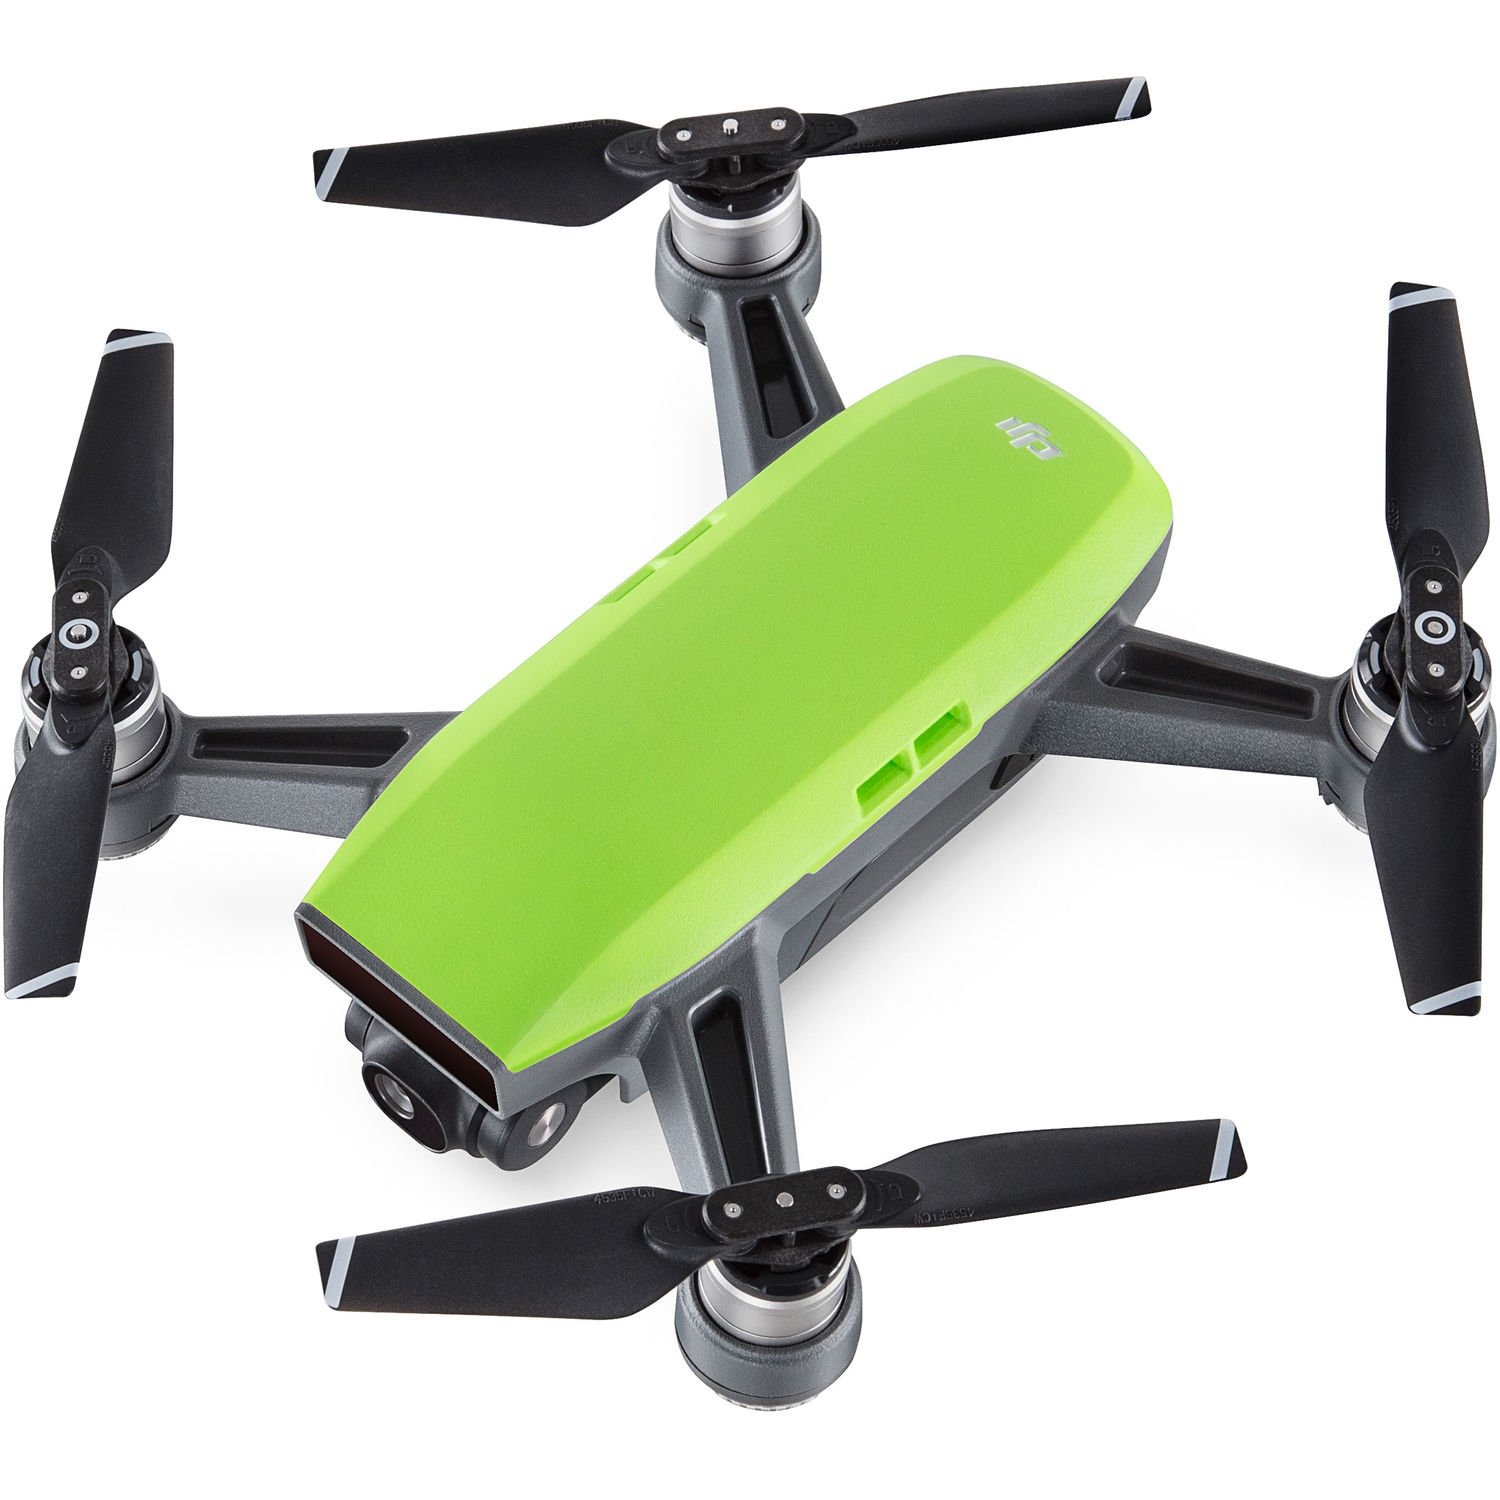 DJI Spark Meadow Green version